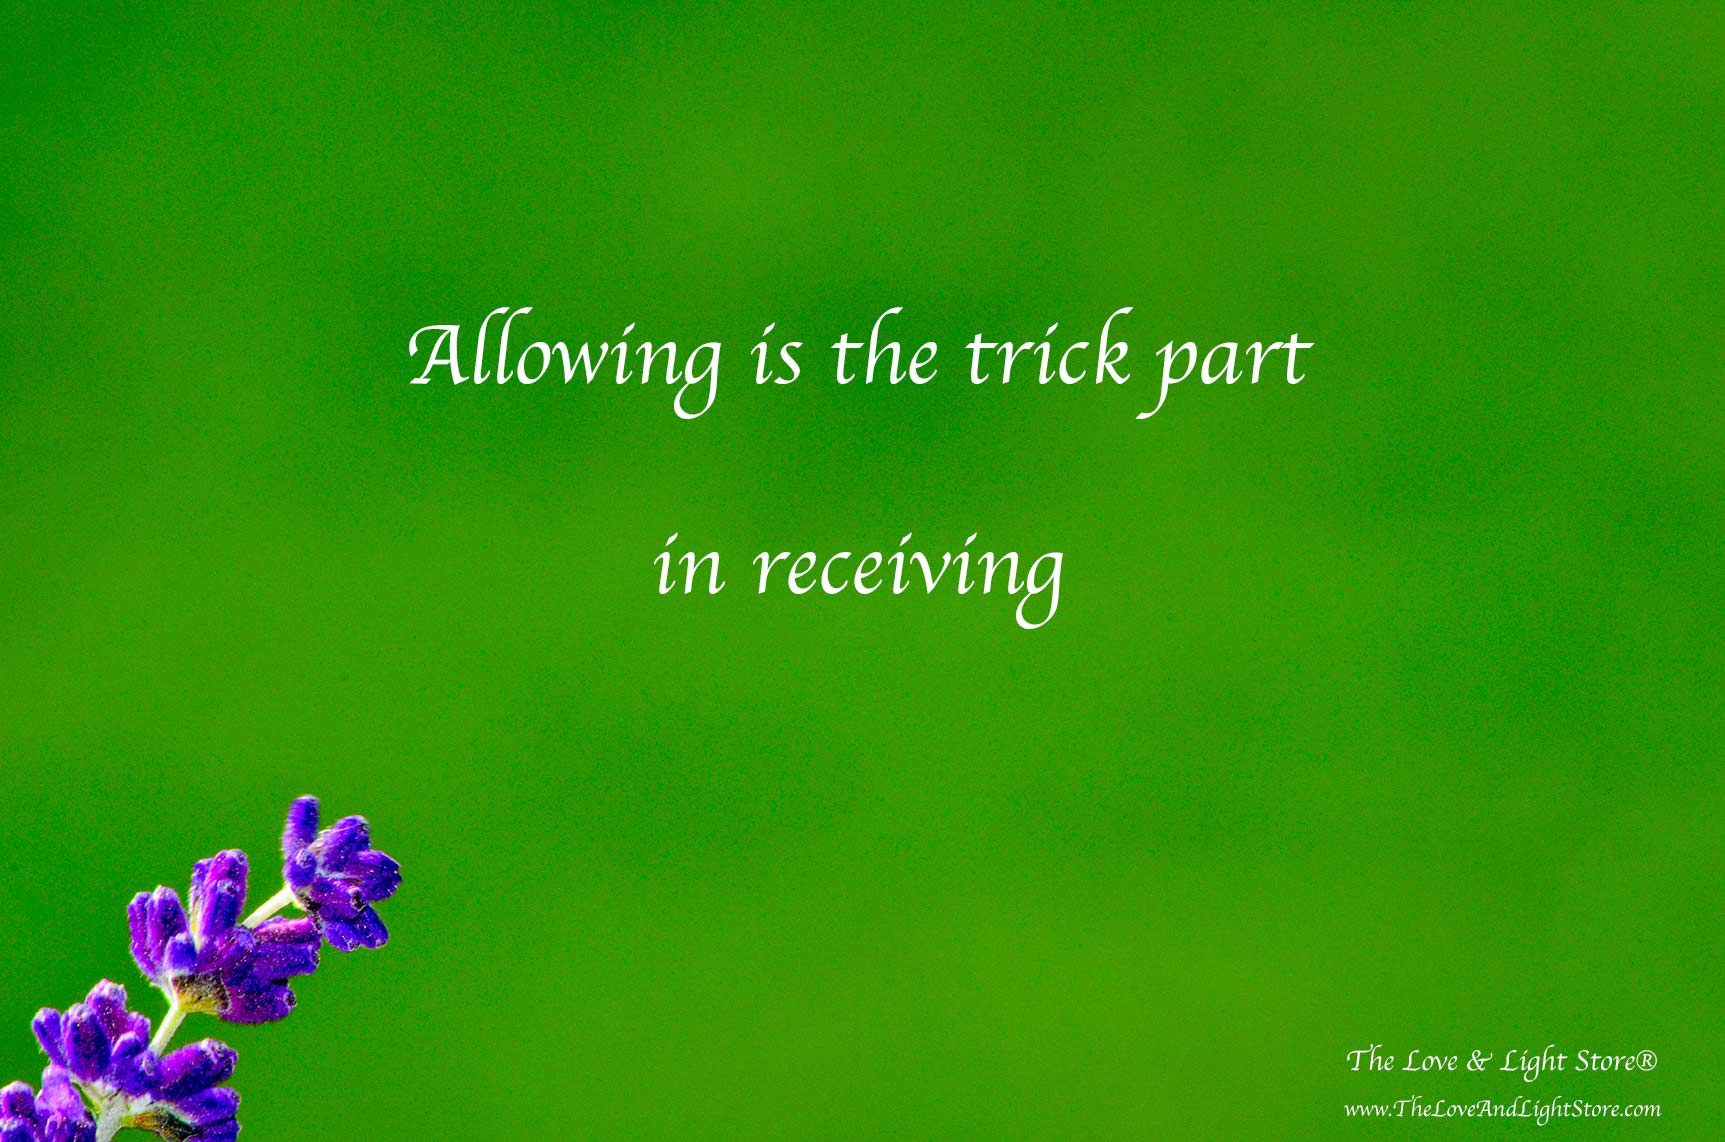 Allowing is the tricky part in receiving